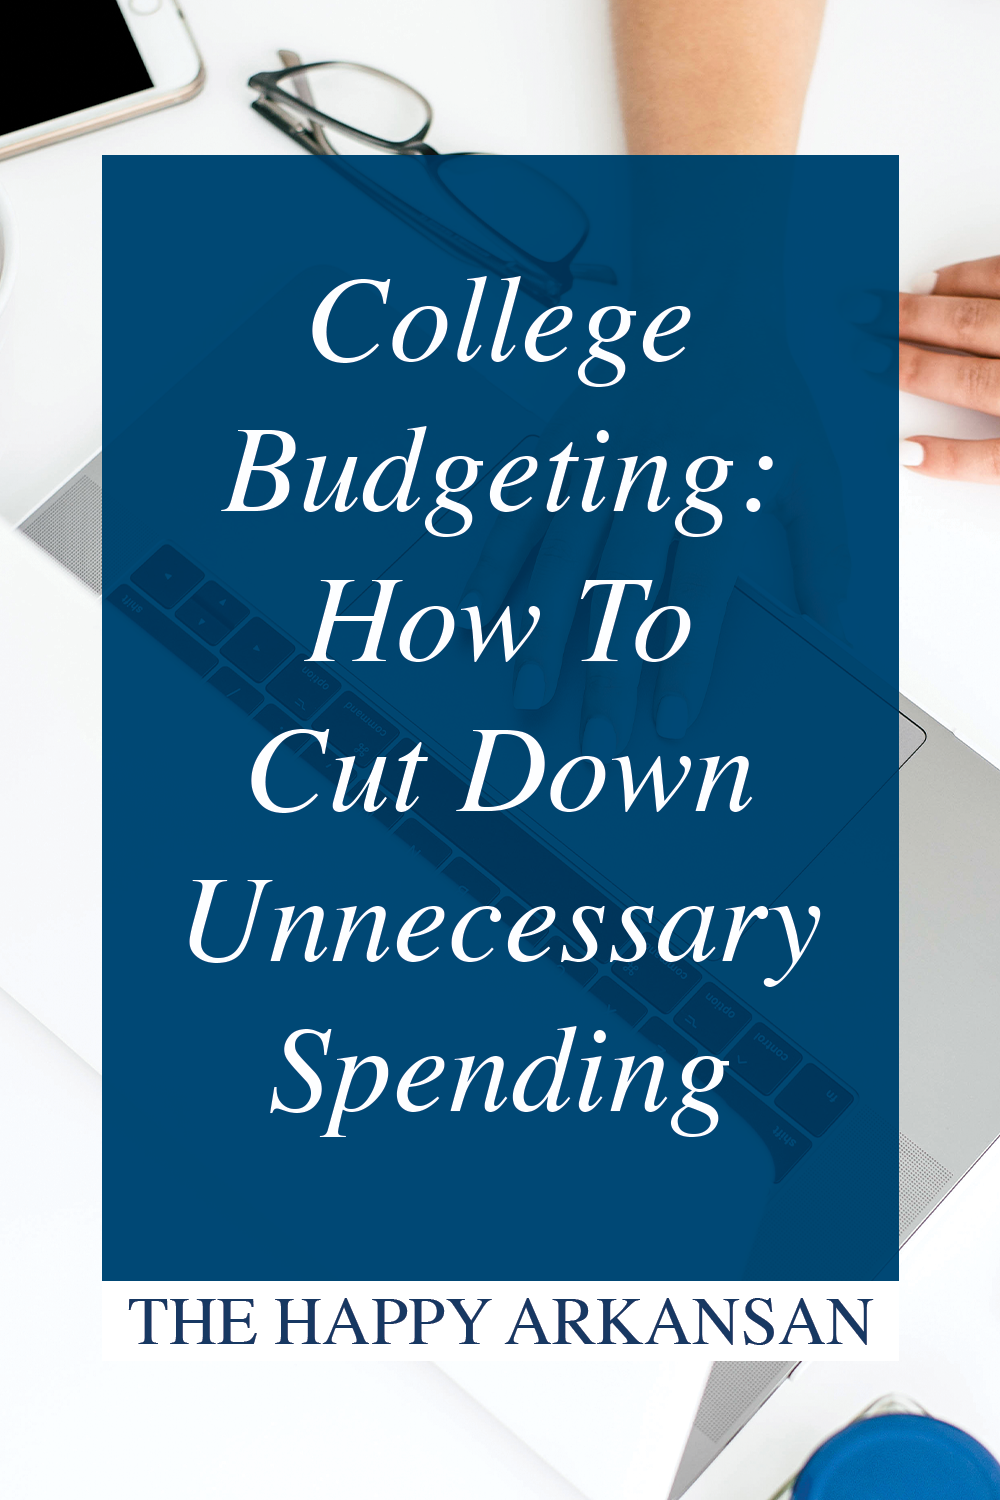 College Budgeting: How To Cut Down Unnecessary Spending | Are you spending too much in college? Check out this post on how to curb your spending in college so you can budget better and stop going in the negative.